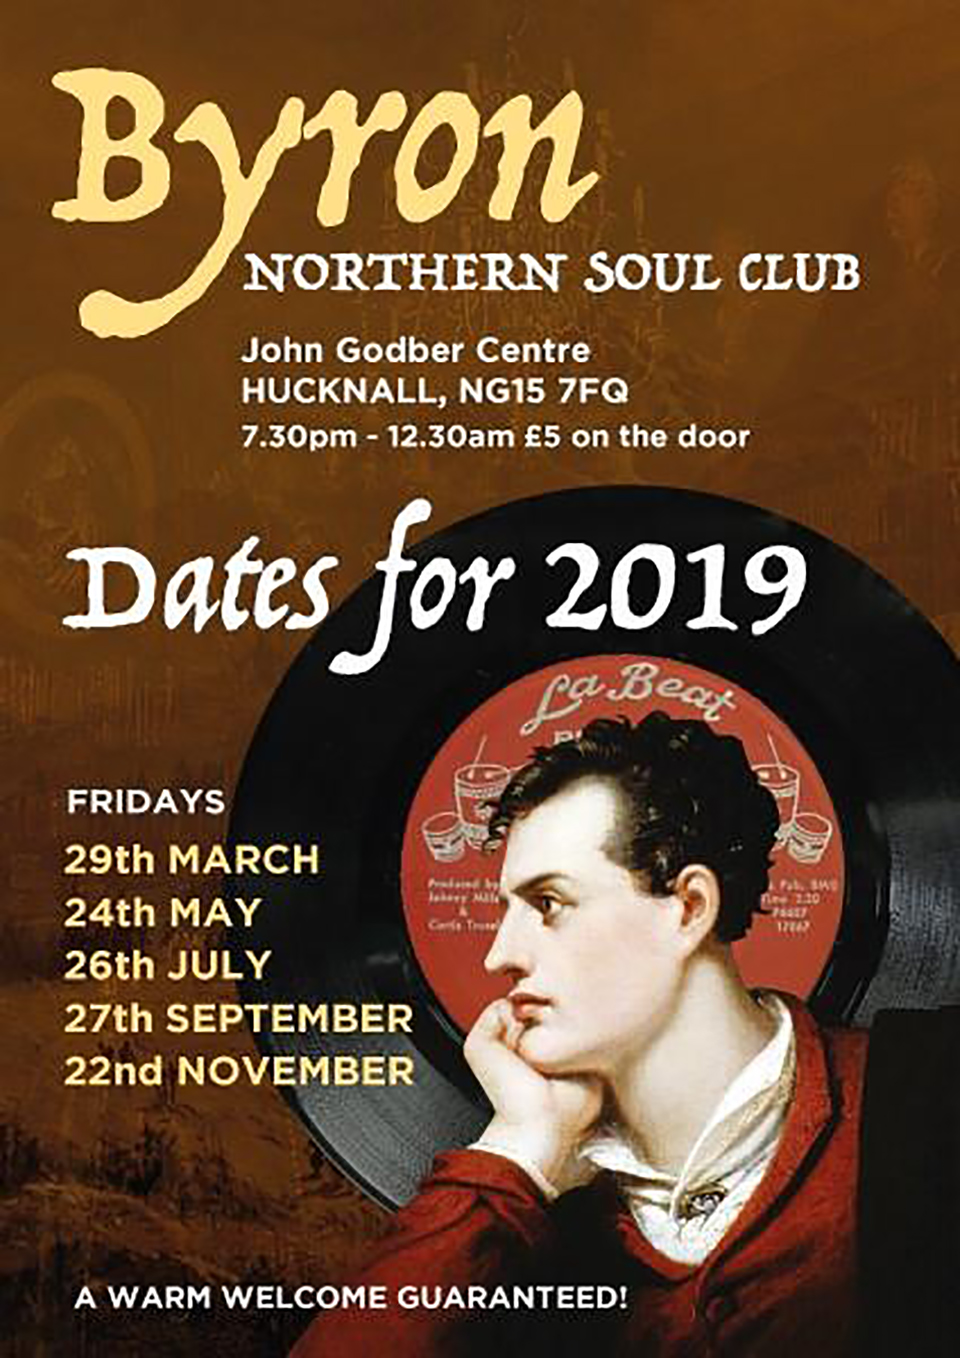 Byron Northern Soul Club event dates 2019